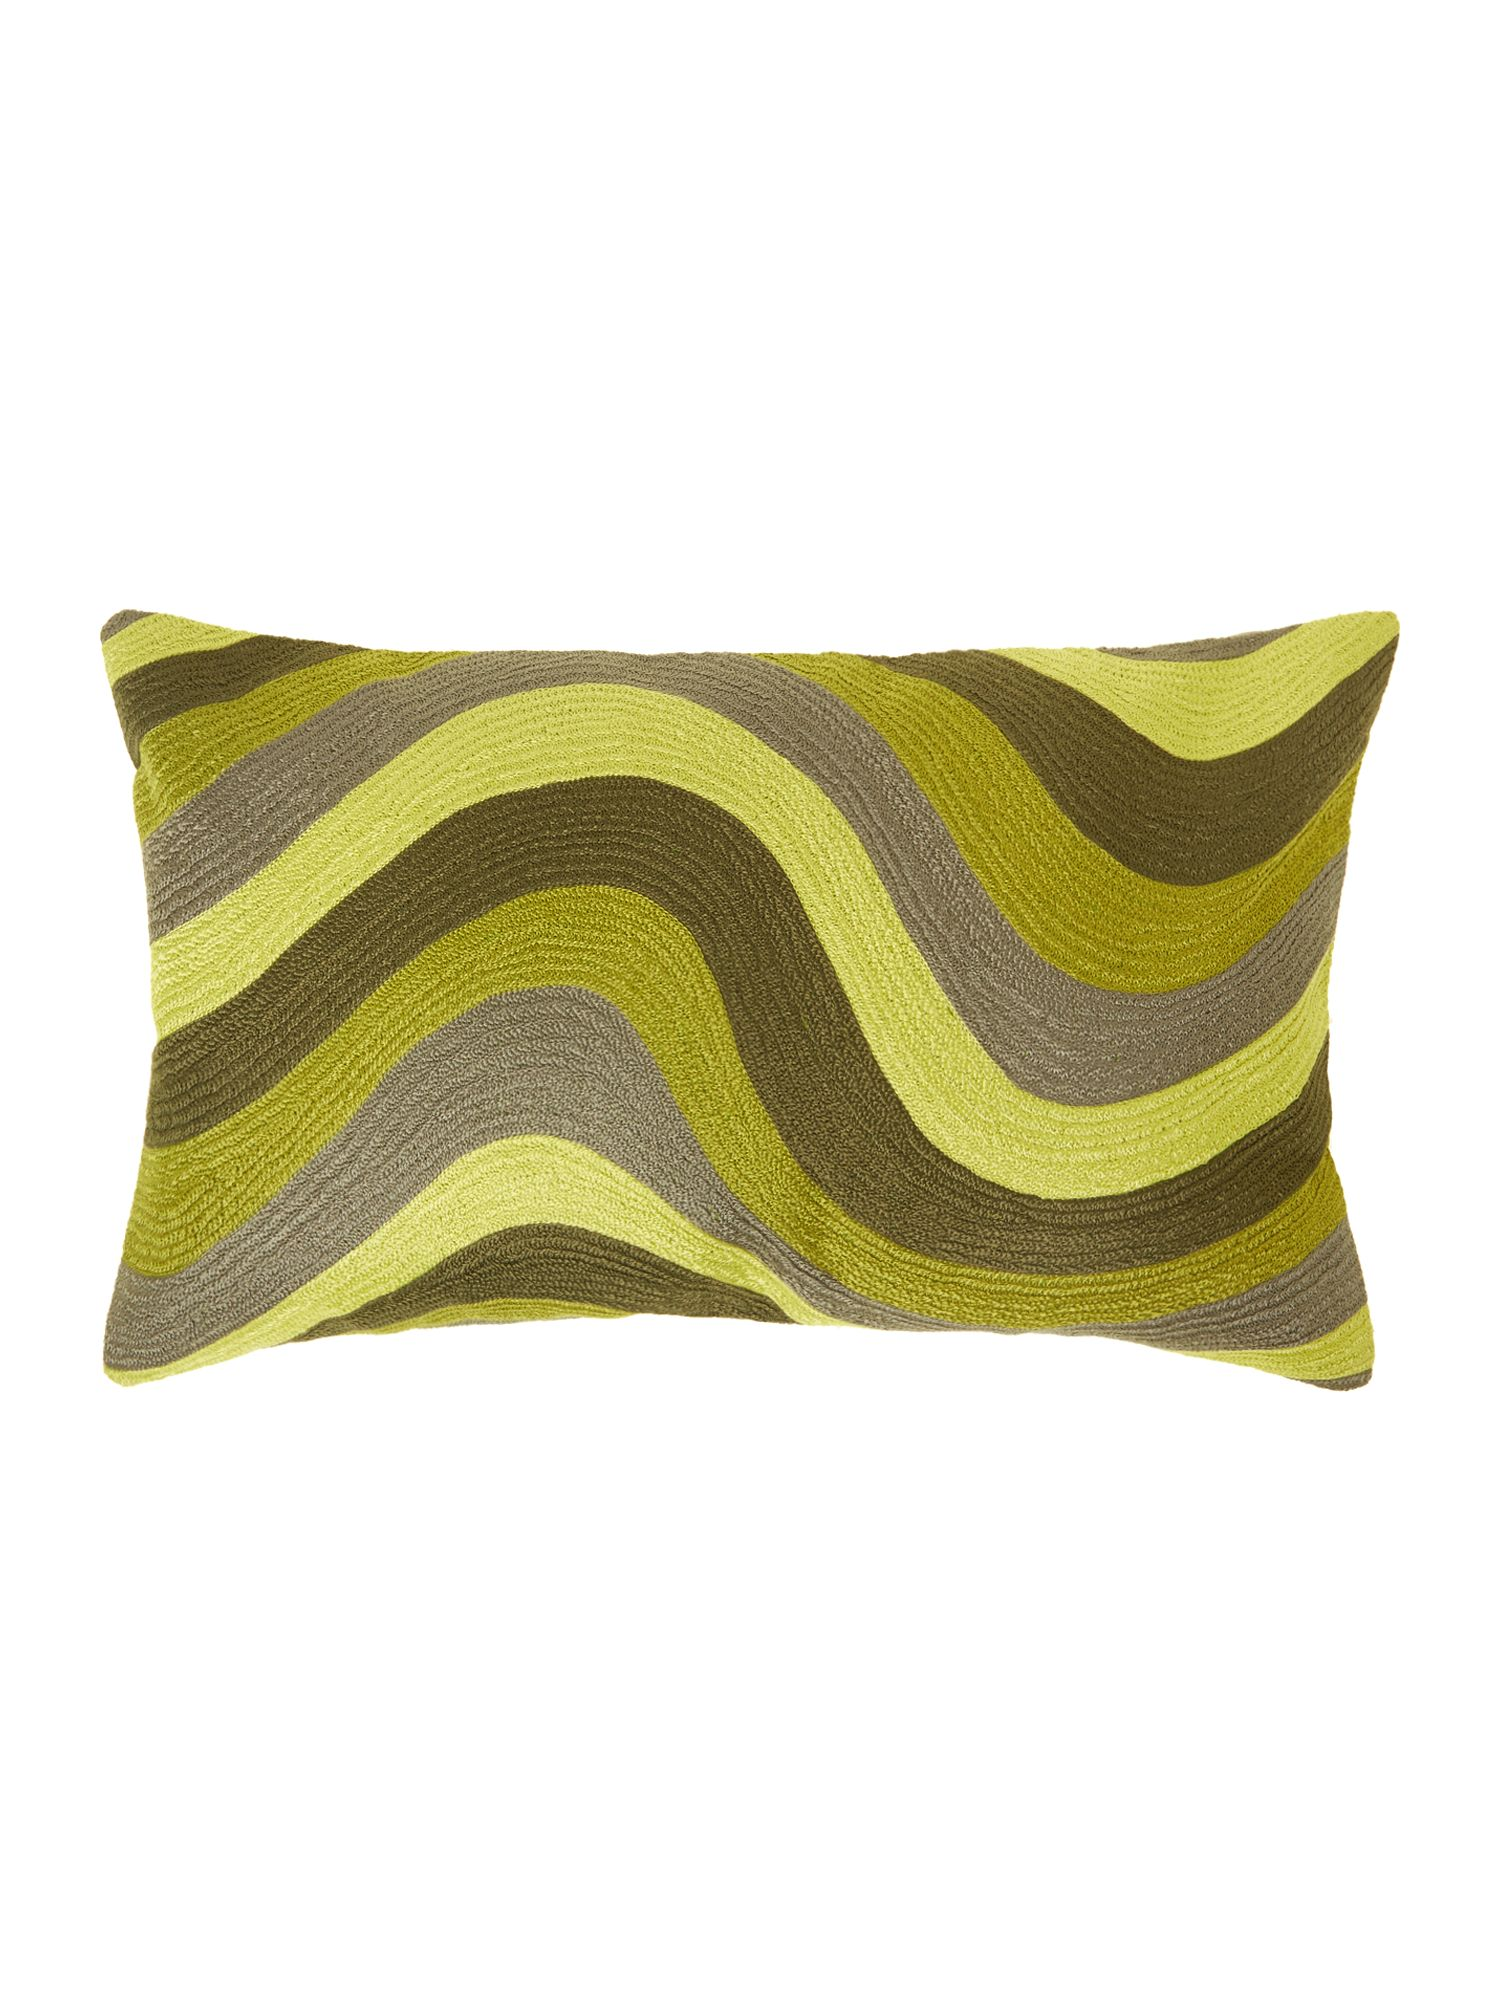 Green crewel cushion